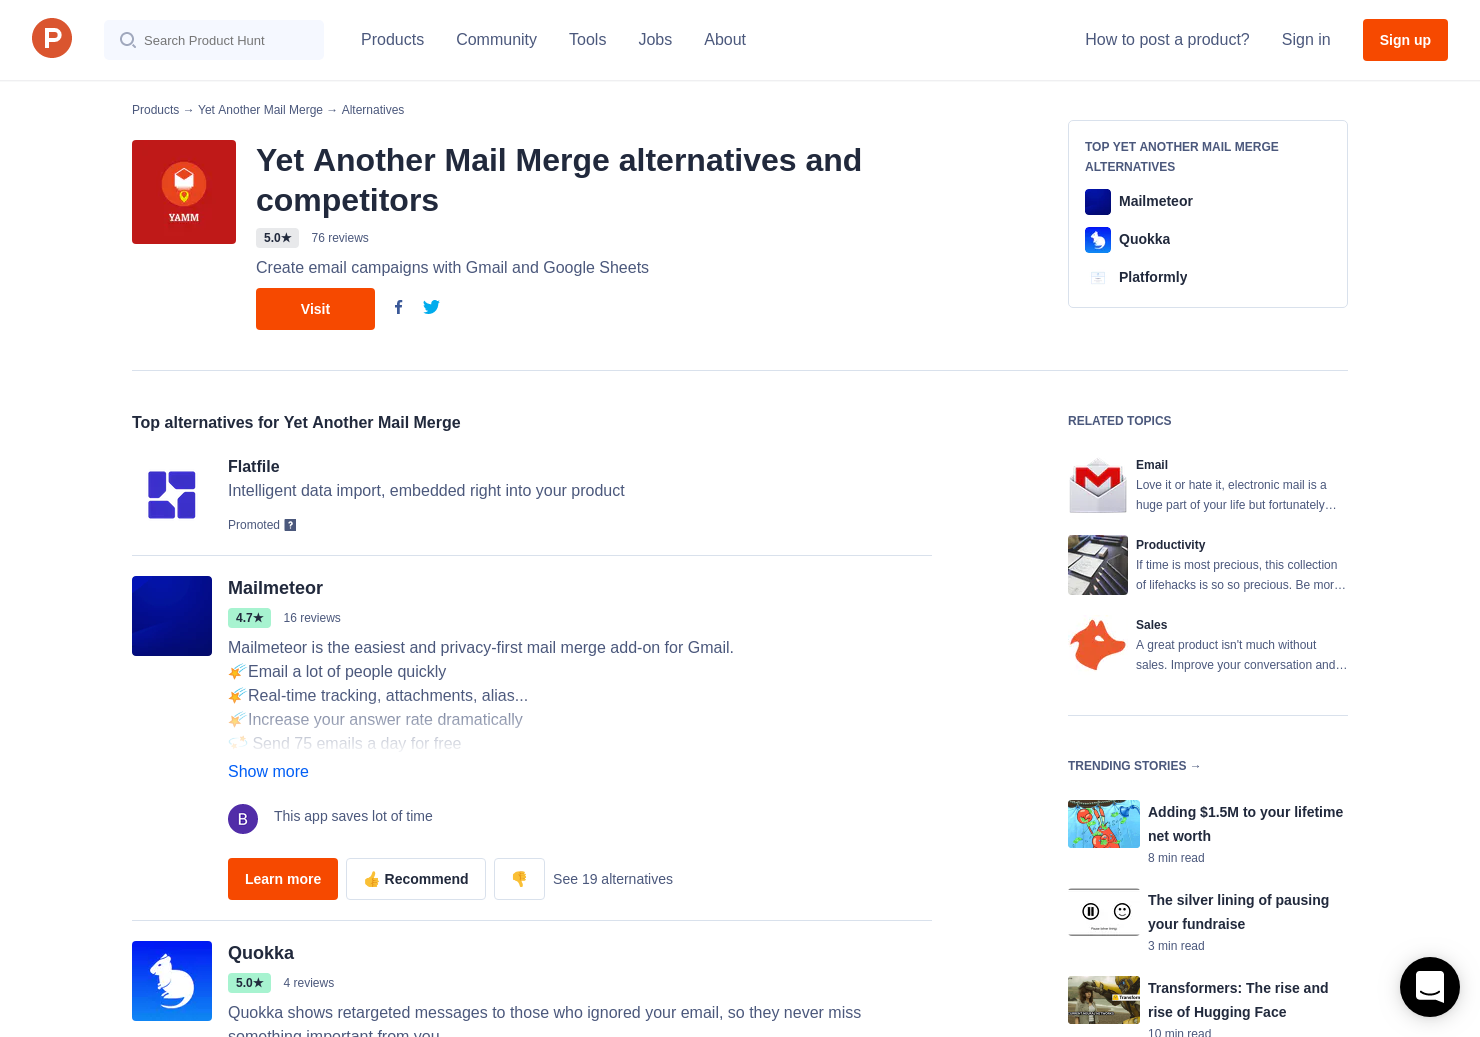 8 Alternatives to Yet Another Mail Merge (YAMM)   Product Hunt